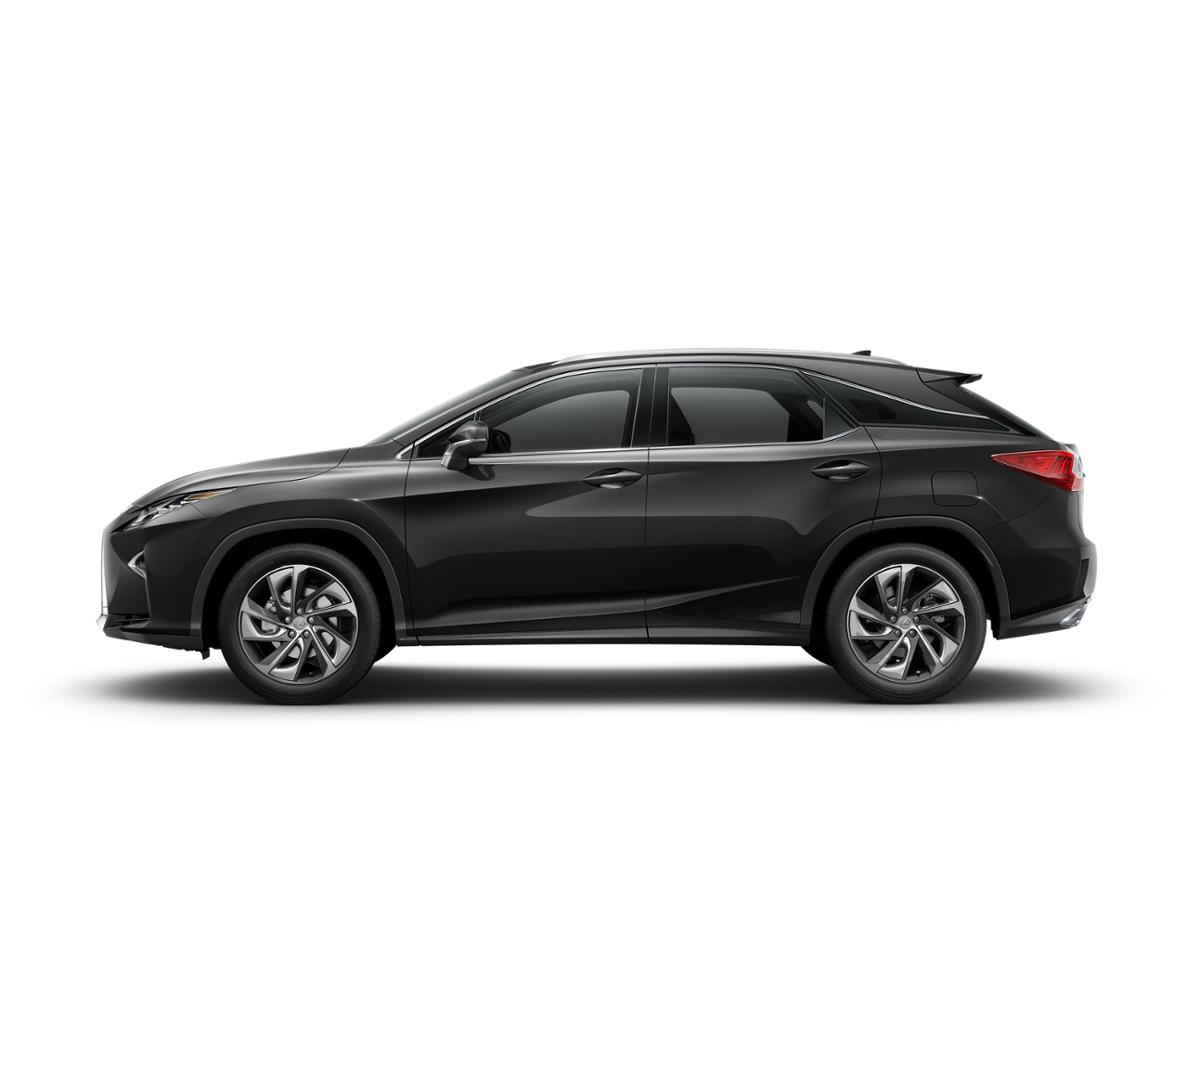 towson caviar 2018 lexus rx 350 new suv for sale y21224. Black Bedroom Furniture Sets. Home Design Ideas